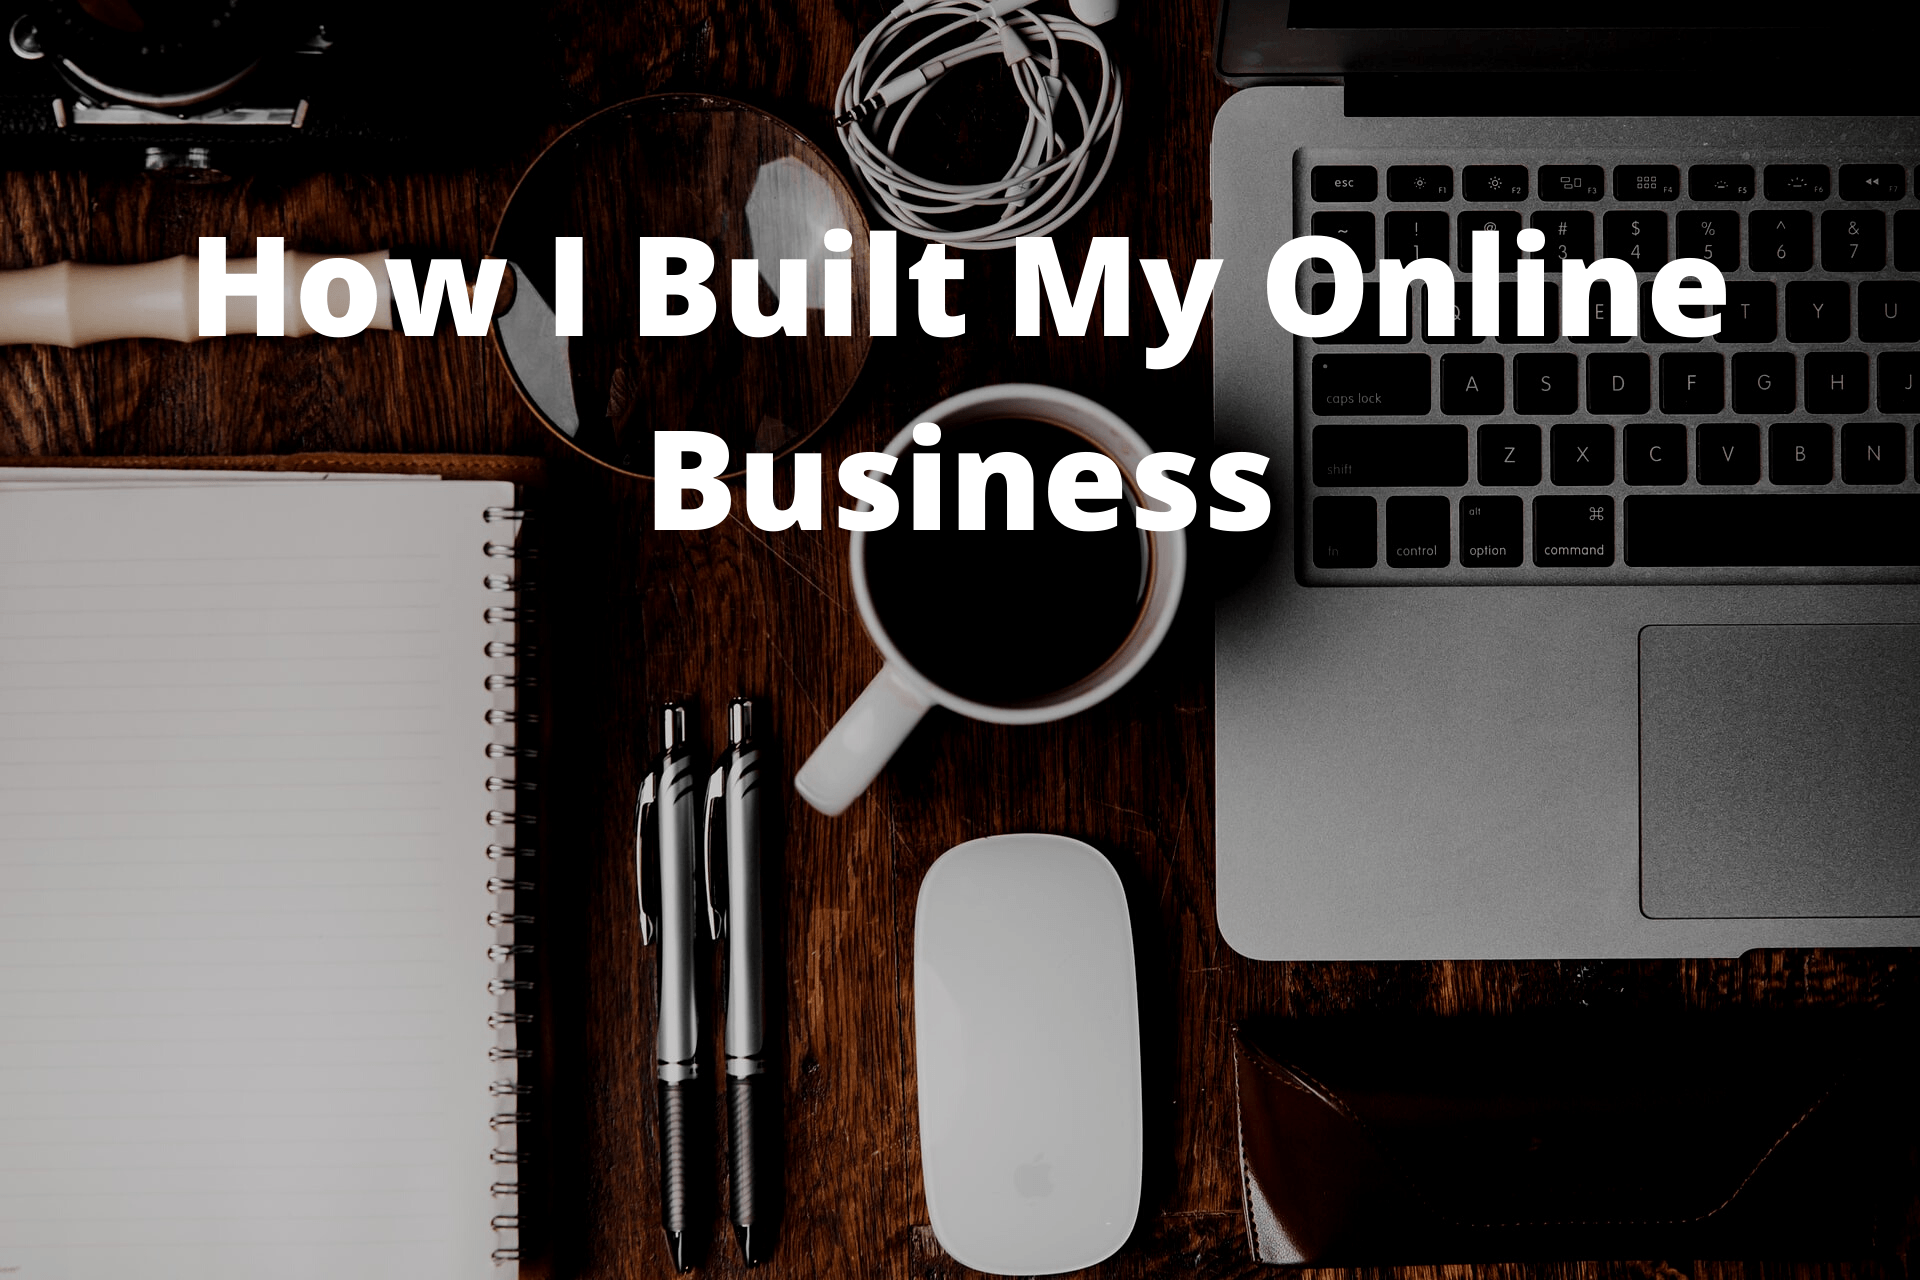 Wealthy Affiliate Review - How I Built My Online Business